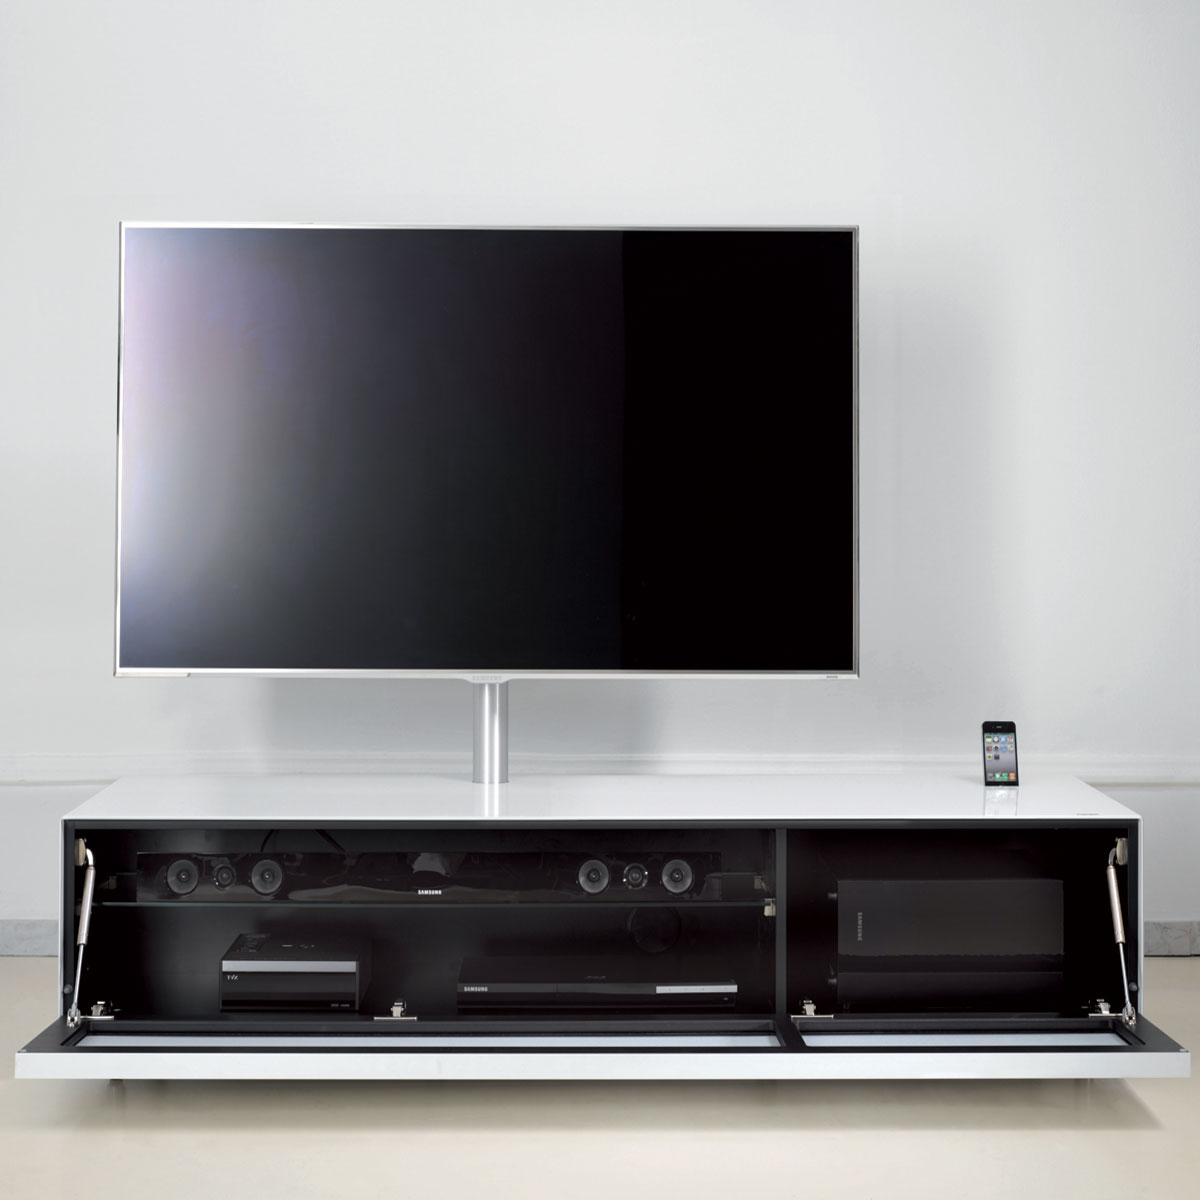 dreams4home tv media element fior mit soundsystem wei. Black Bedroom Furniture Sets. Home Design Ideas